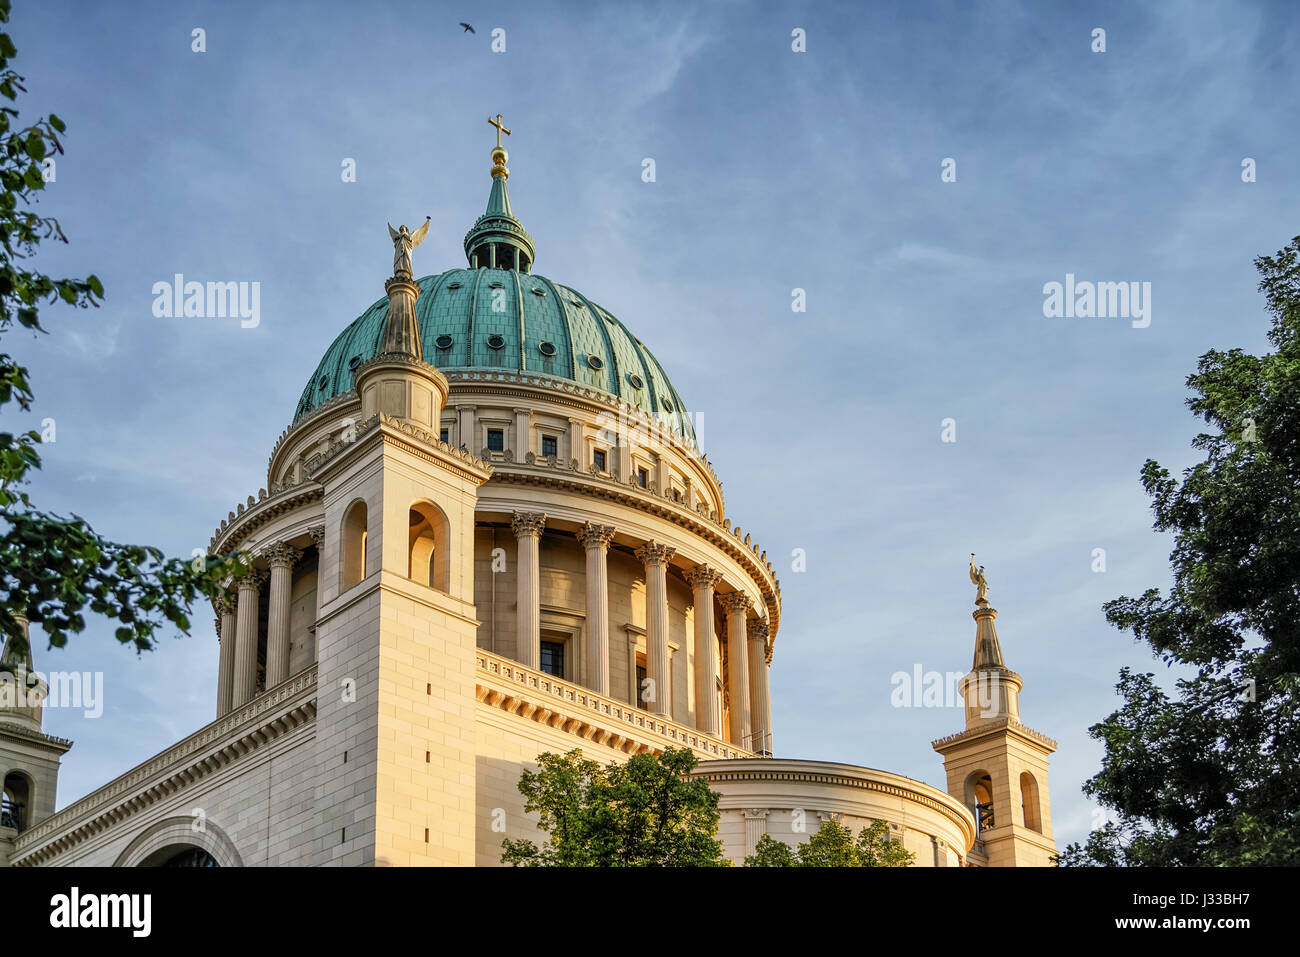 Dome of St. Nicholas church, Nikolaikirche, Alter Markt, Potsdam, Brandenburg, Germany - Stock Image